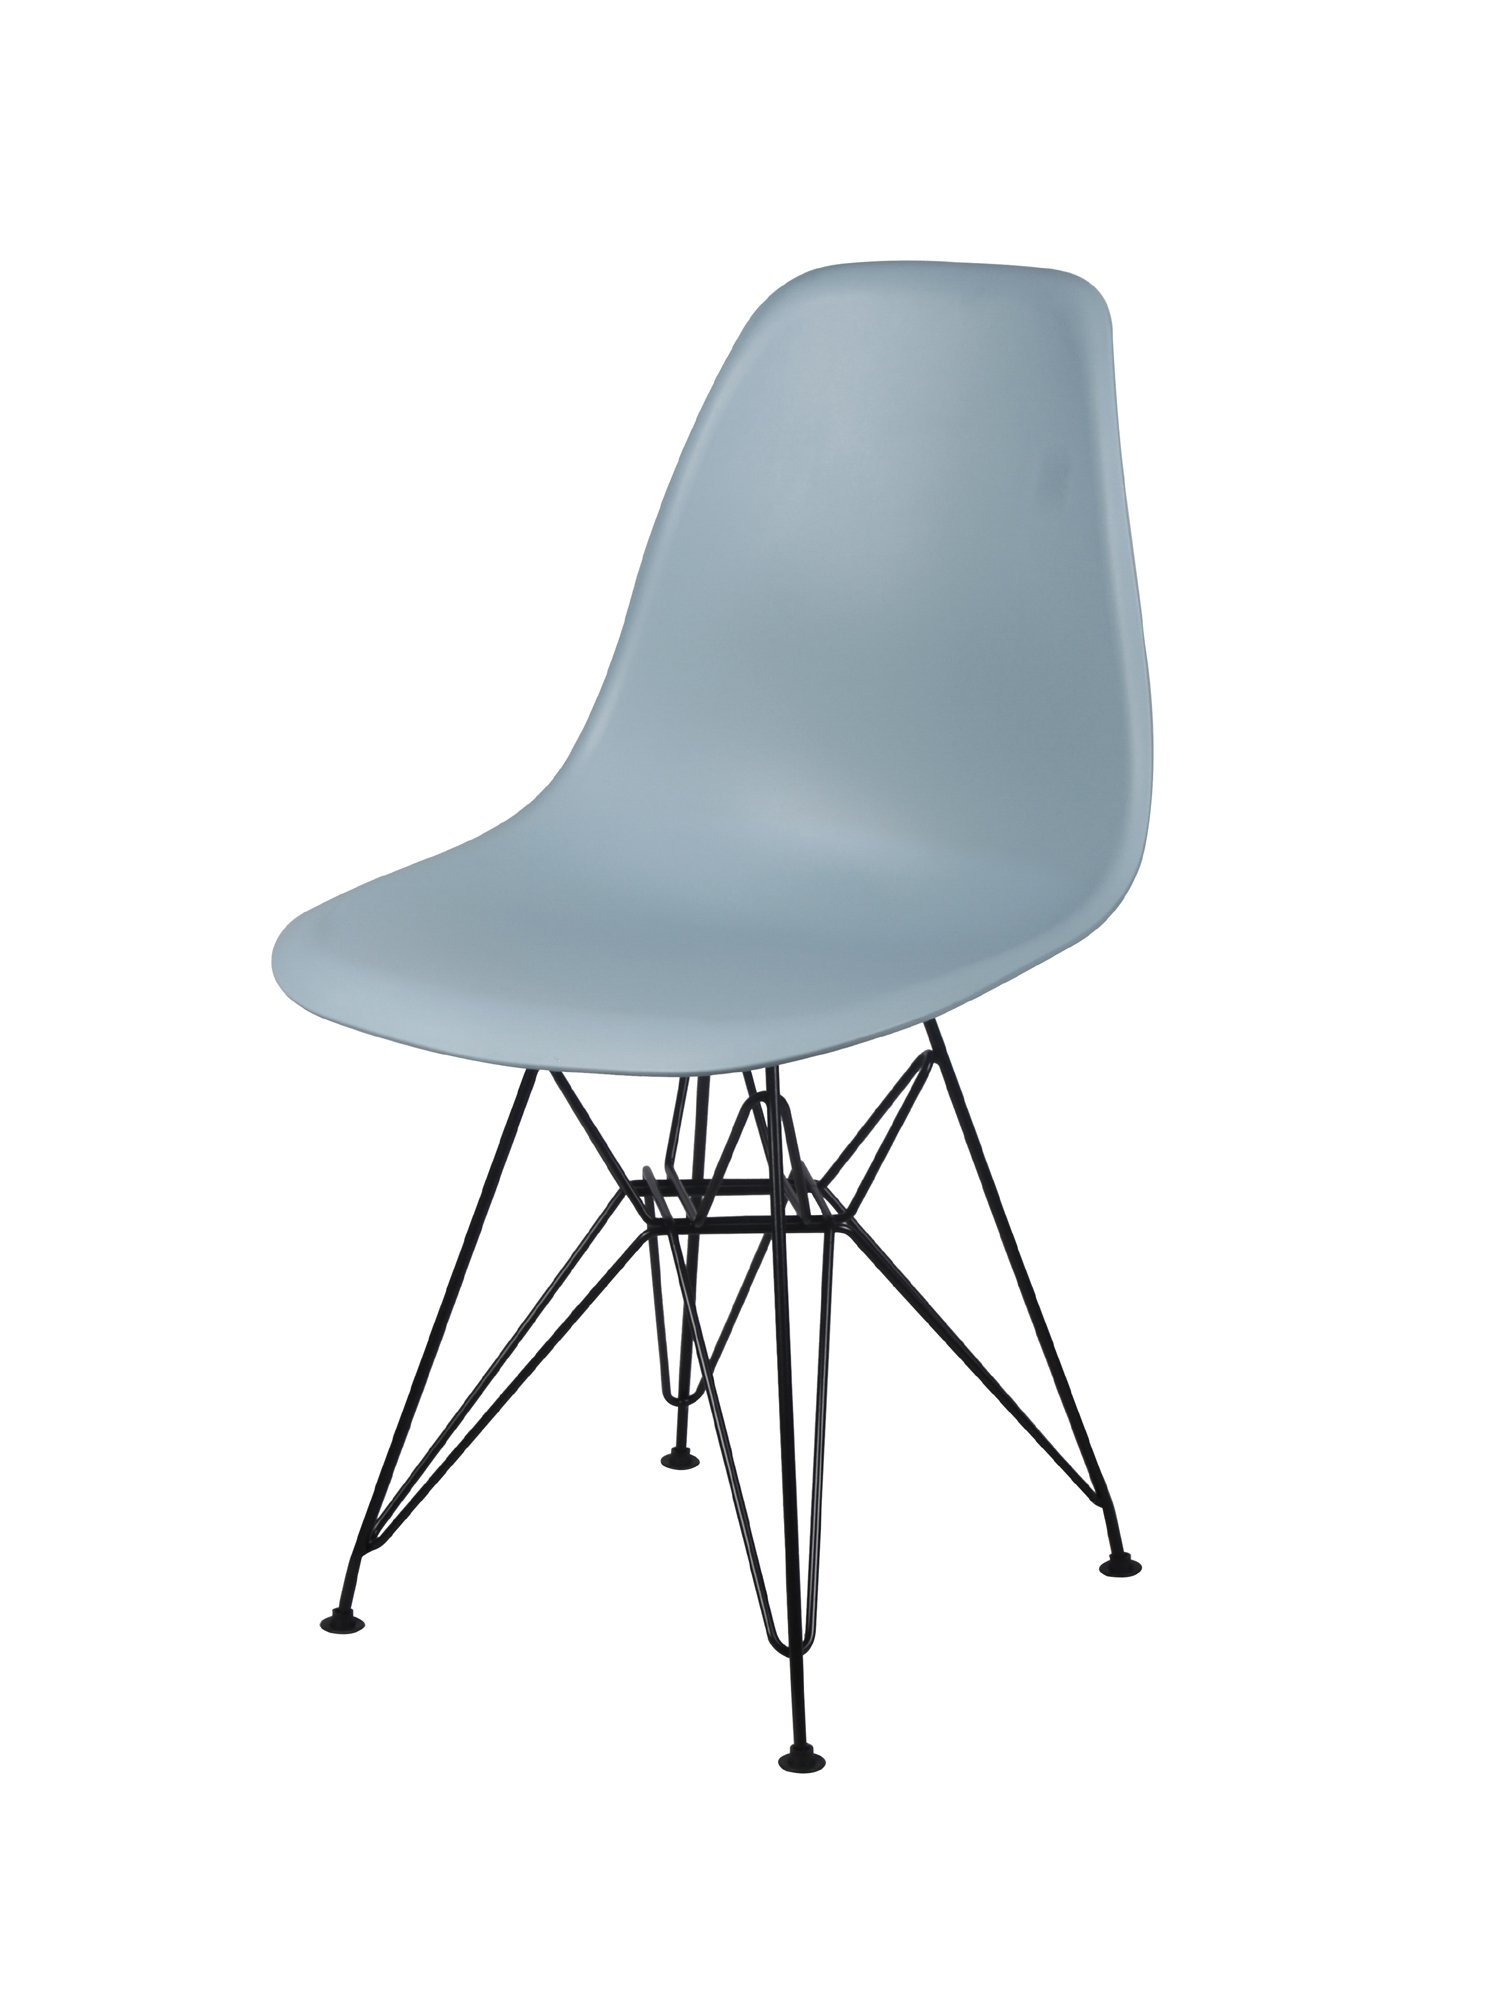 GIA DSR_FOG_1 Eames Plastic Chair, 1-Pack, Black Metal Legs - ERGONOMIC: Designed to provide support for your back, these chairs are functional and comfortable for you and your guests. STURDY CONSTRUCTION: Well-made and built to last. Black Eifel supports ensure stability. Makes a beautiful and elegant addition to any room. CONTEMPORARY: Adds a designer touch to your home or office. Your friends and family will be envious of your great taste in furniture. - kitchen-dining-room-furniture, kitchen-dining-room, kitchen-dining-room-chairs - 61WJAN9tNmL -